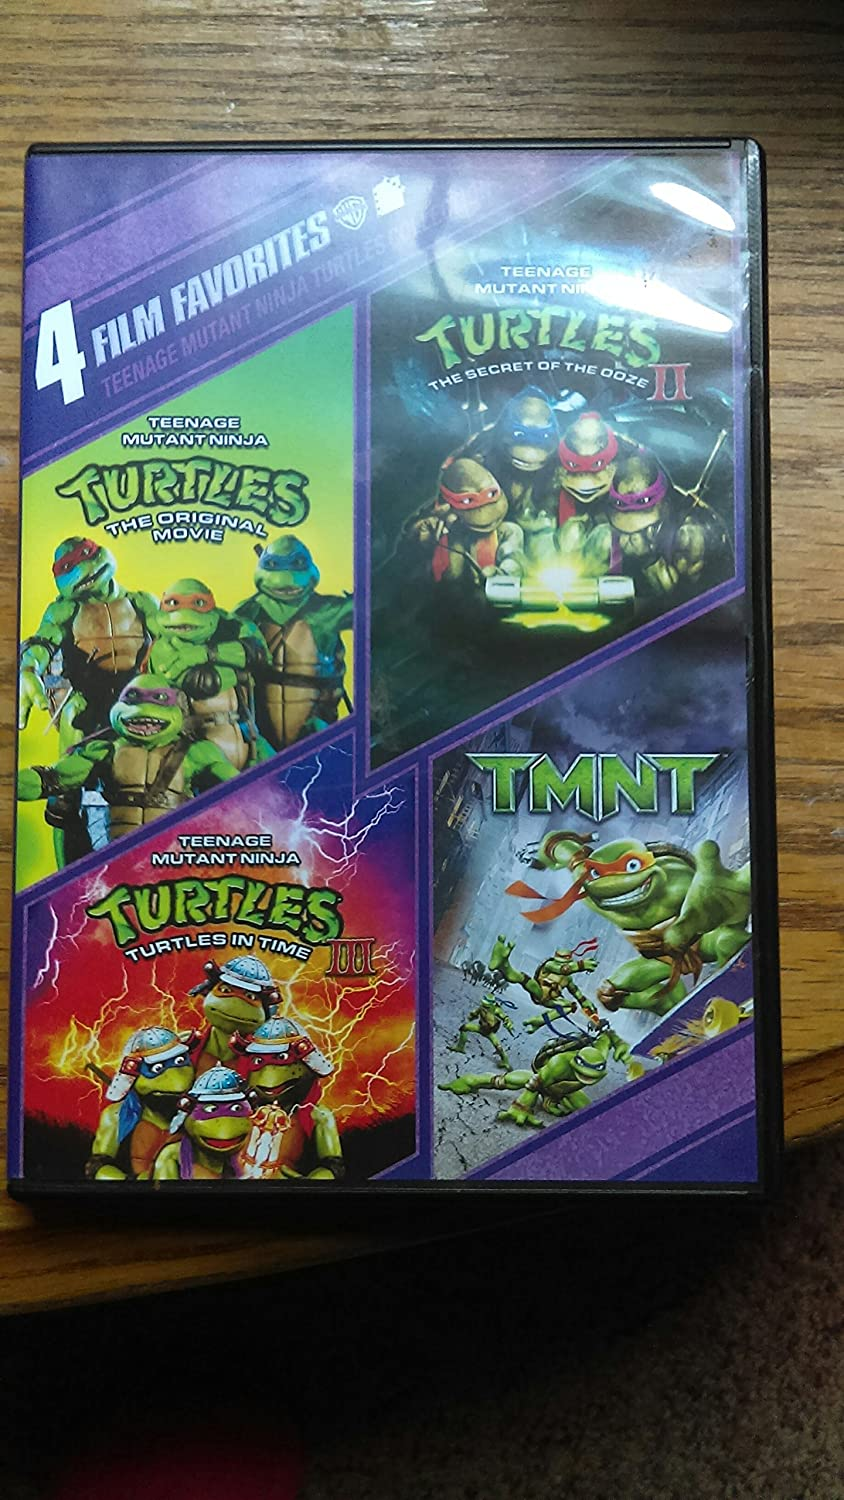 4 Film Favorites: Teenage Mutant Ninja Turtles USA DVD ...